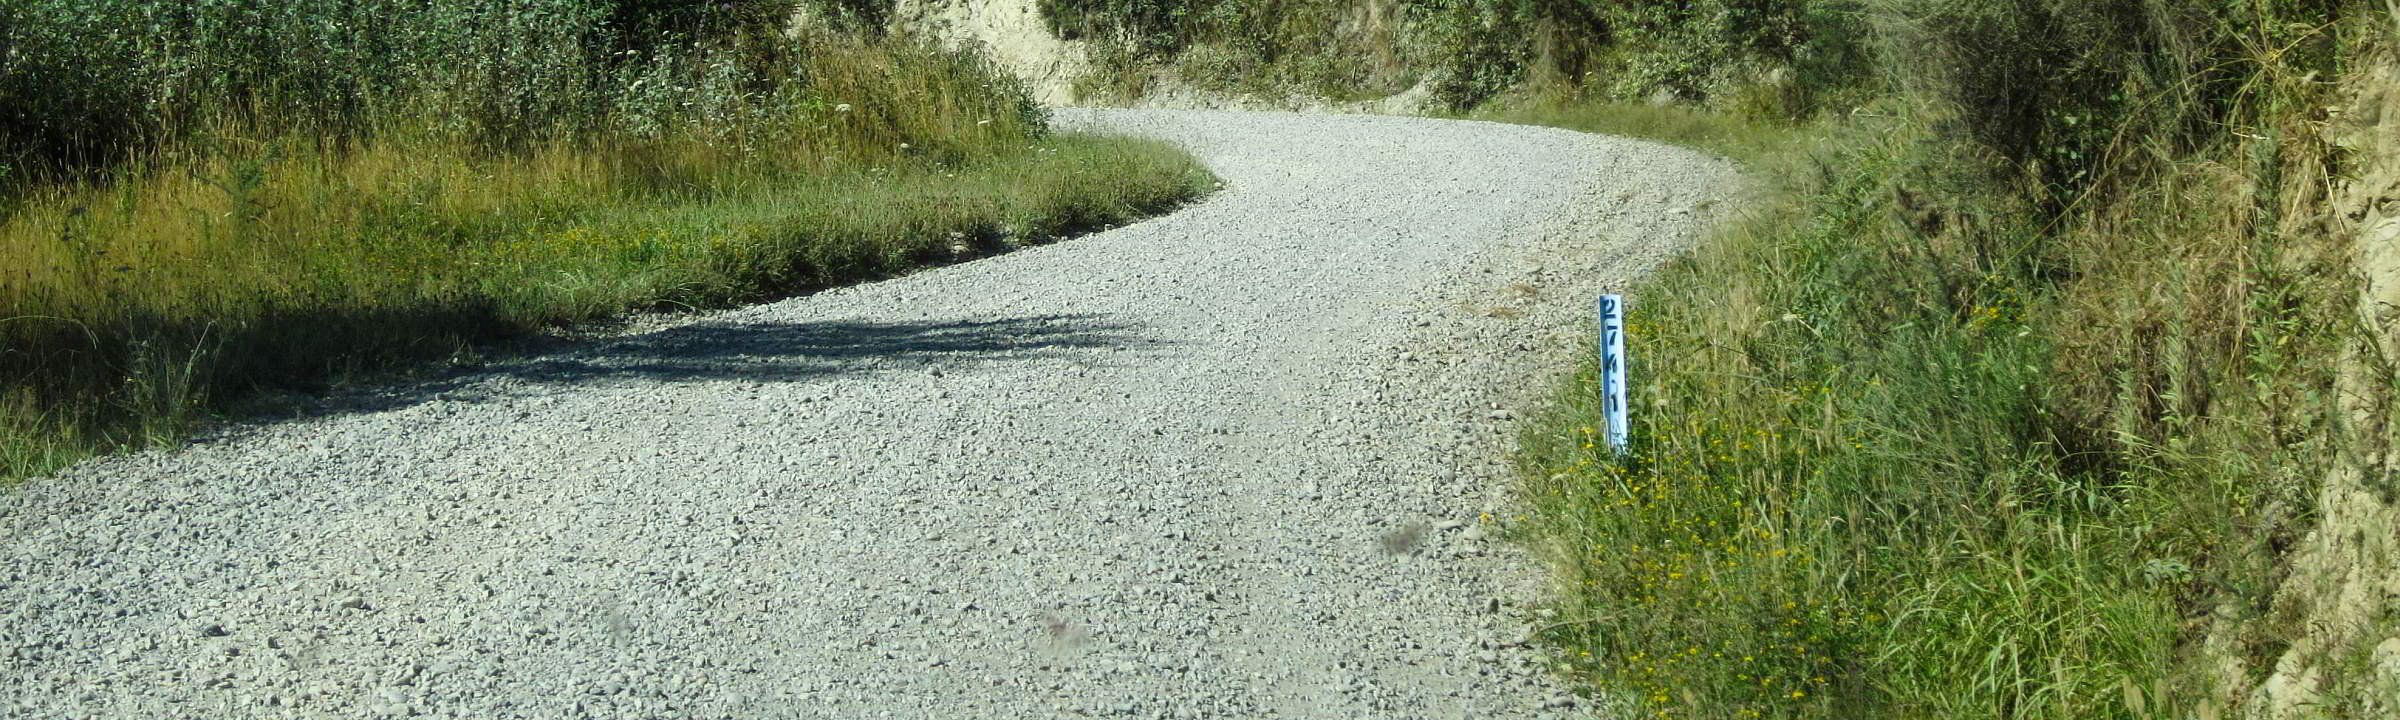 Gravel Road or State Highway?